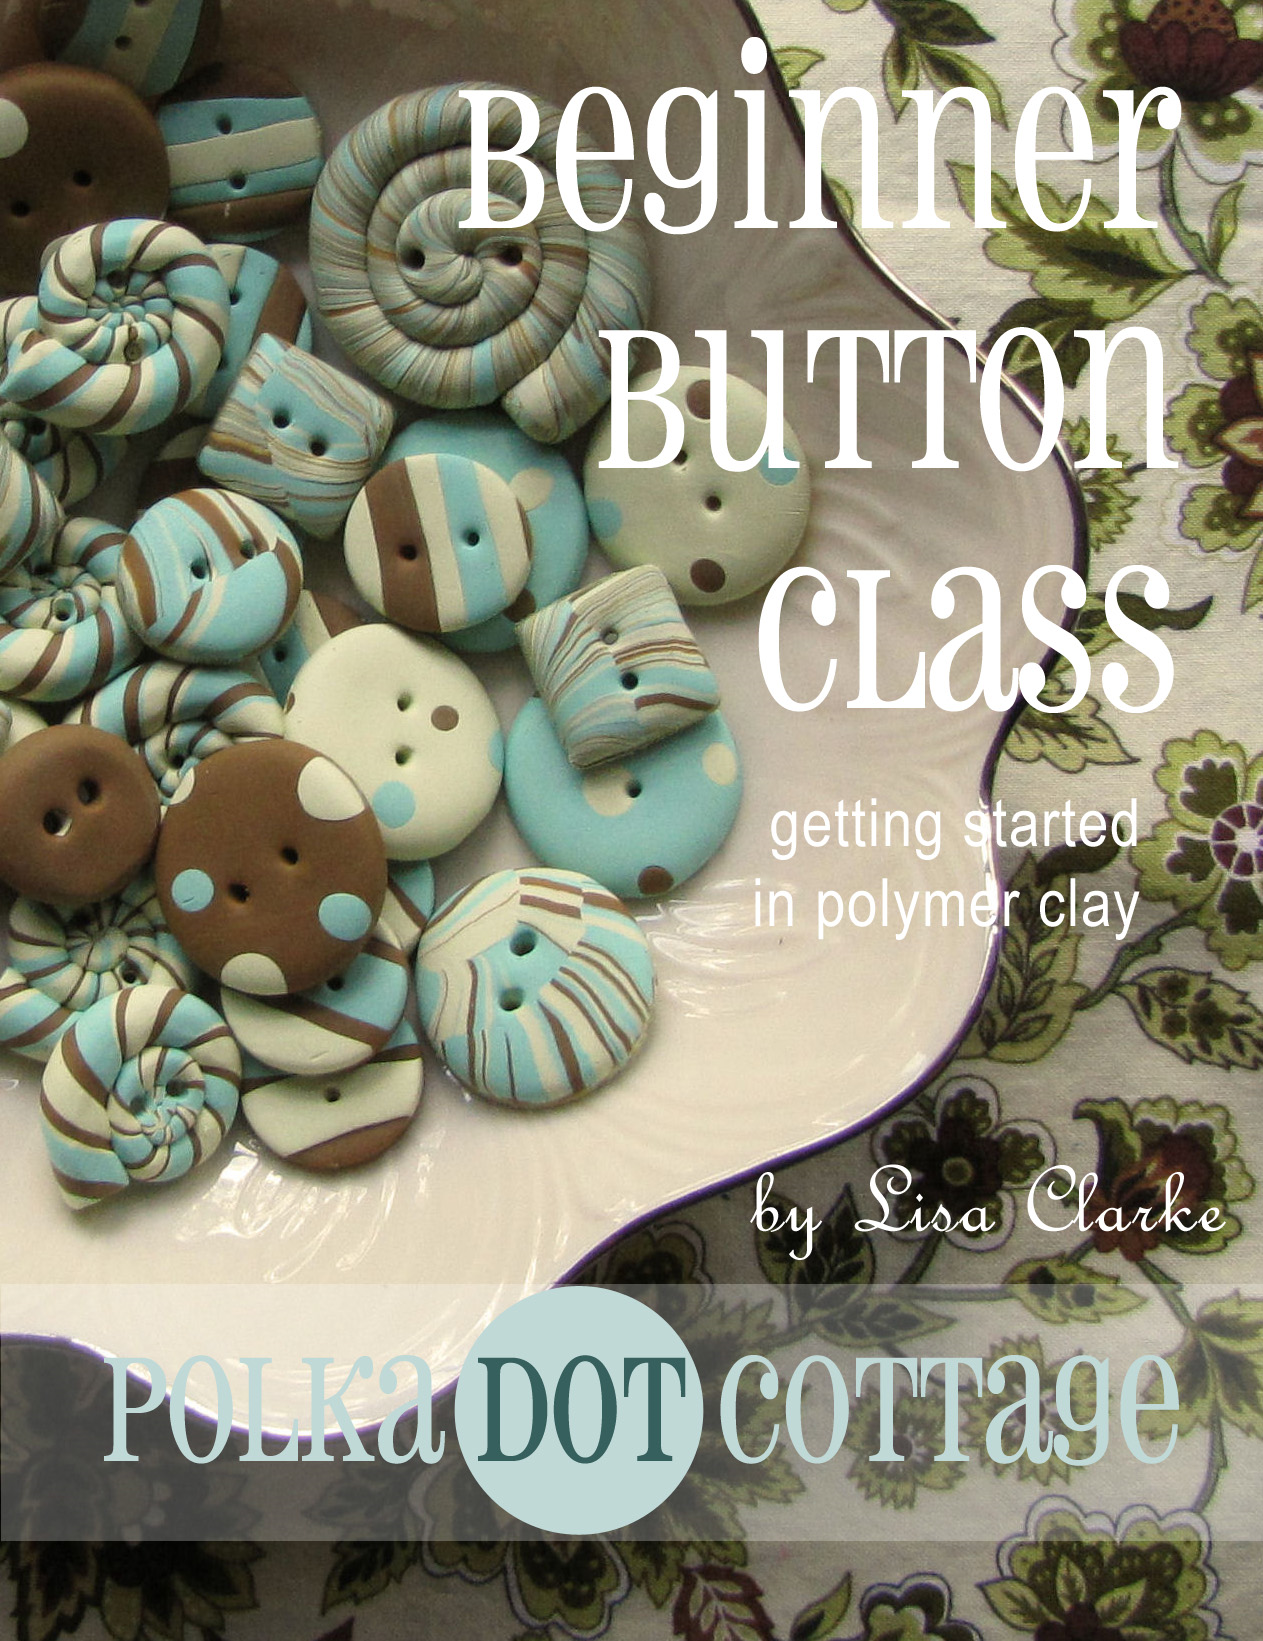 Beginner Button Class By: Lisa Clarke